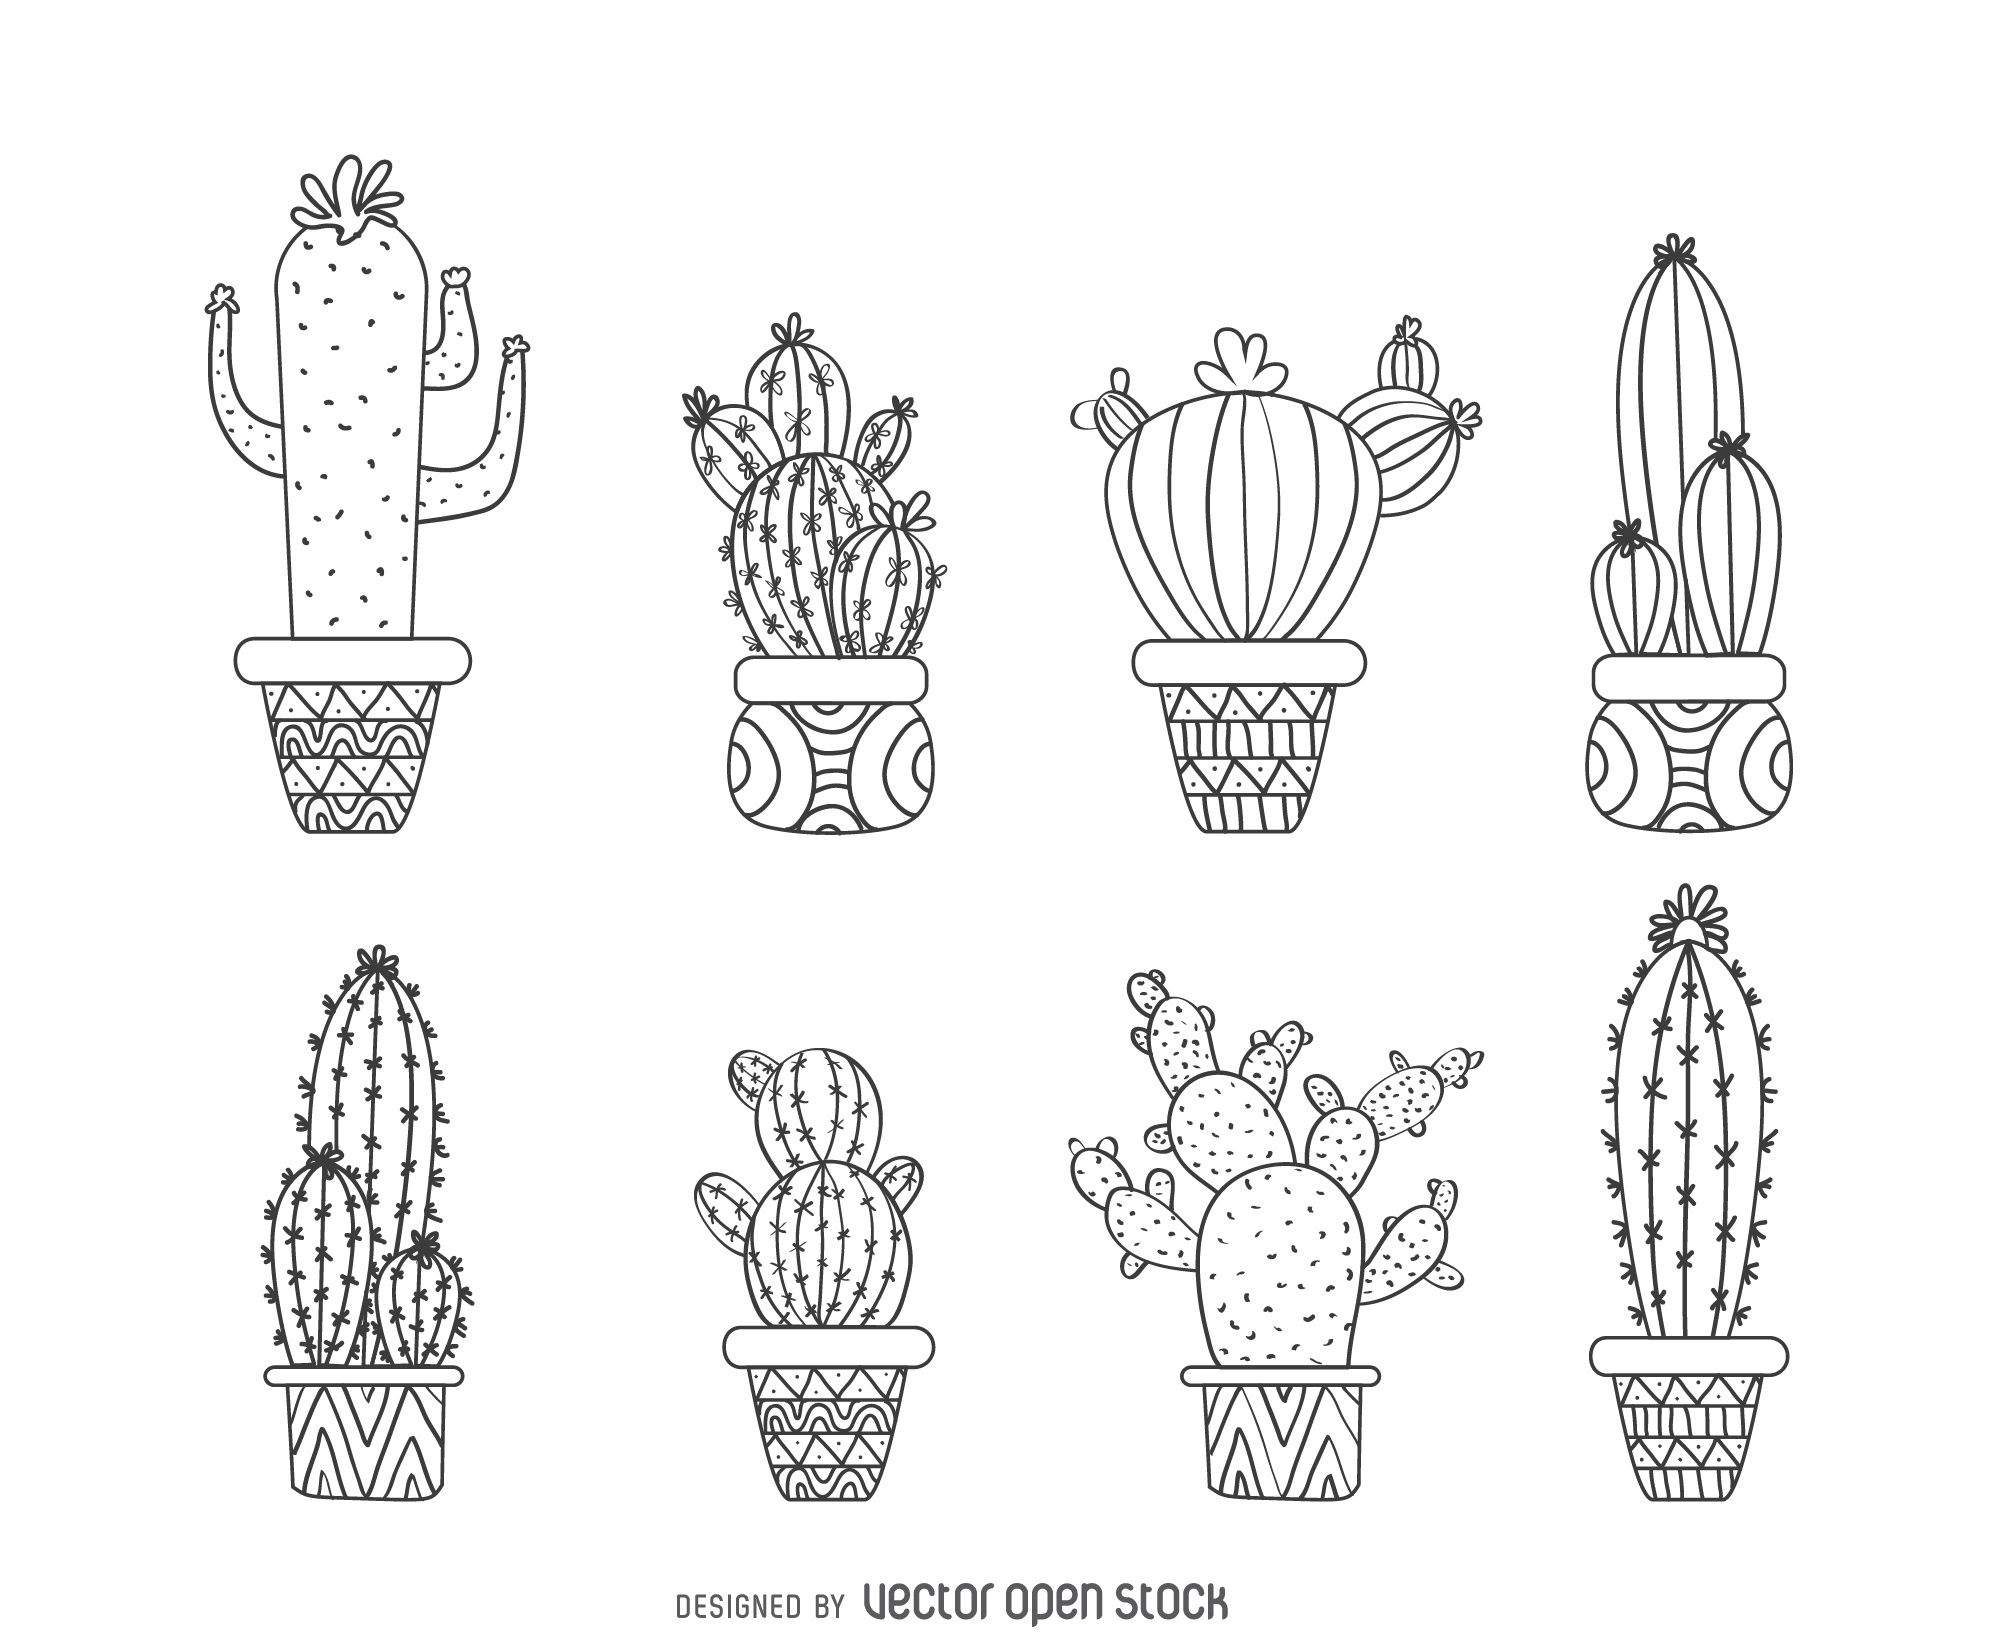 Cartoon Cute Cactuses Coloring Pages Tumblr Free 8 E Cactus Outline How To Draw Hands Cactus Drawing